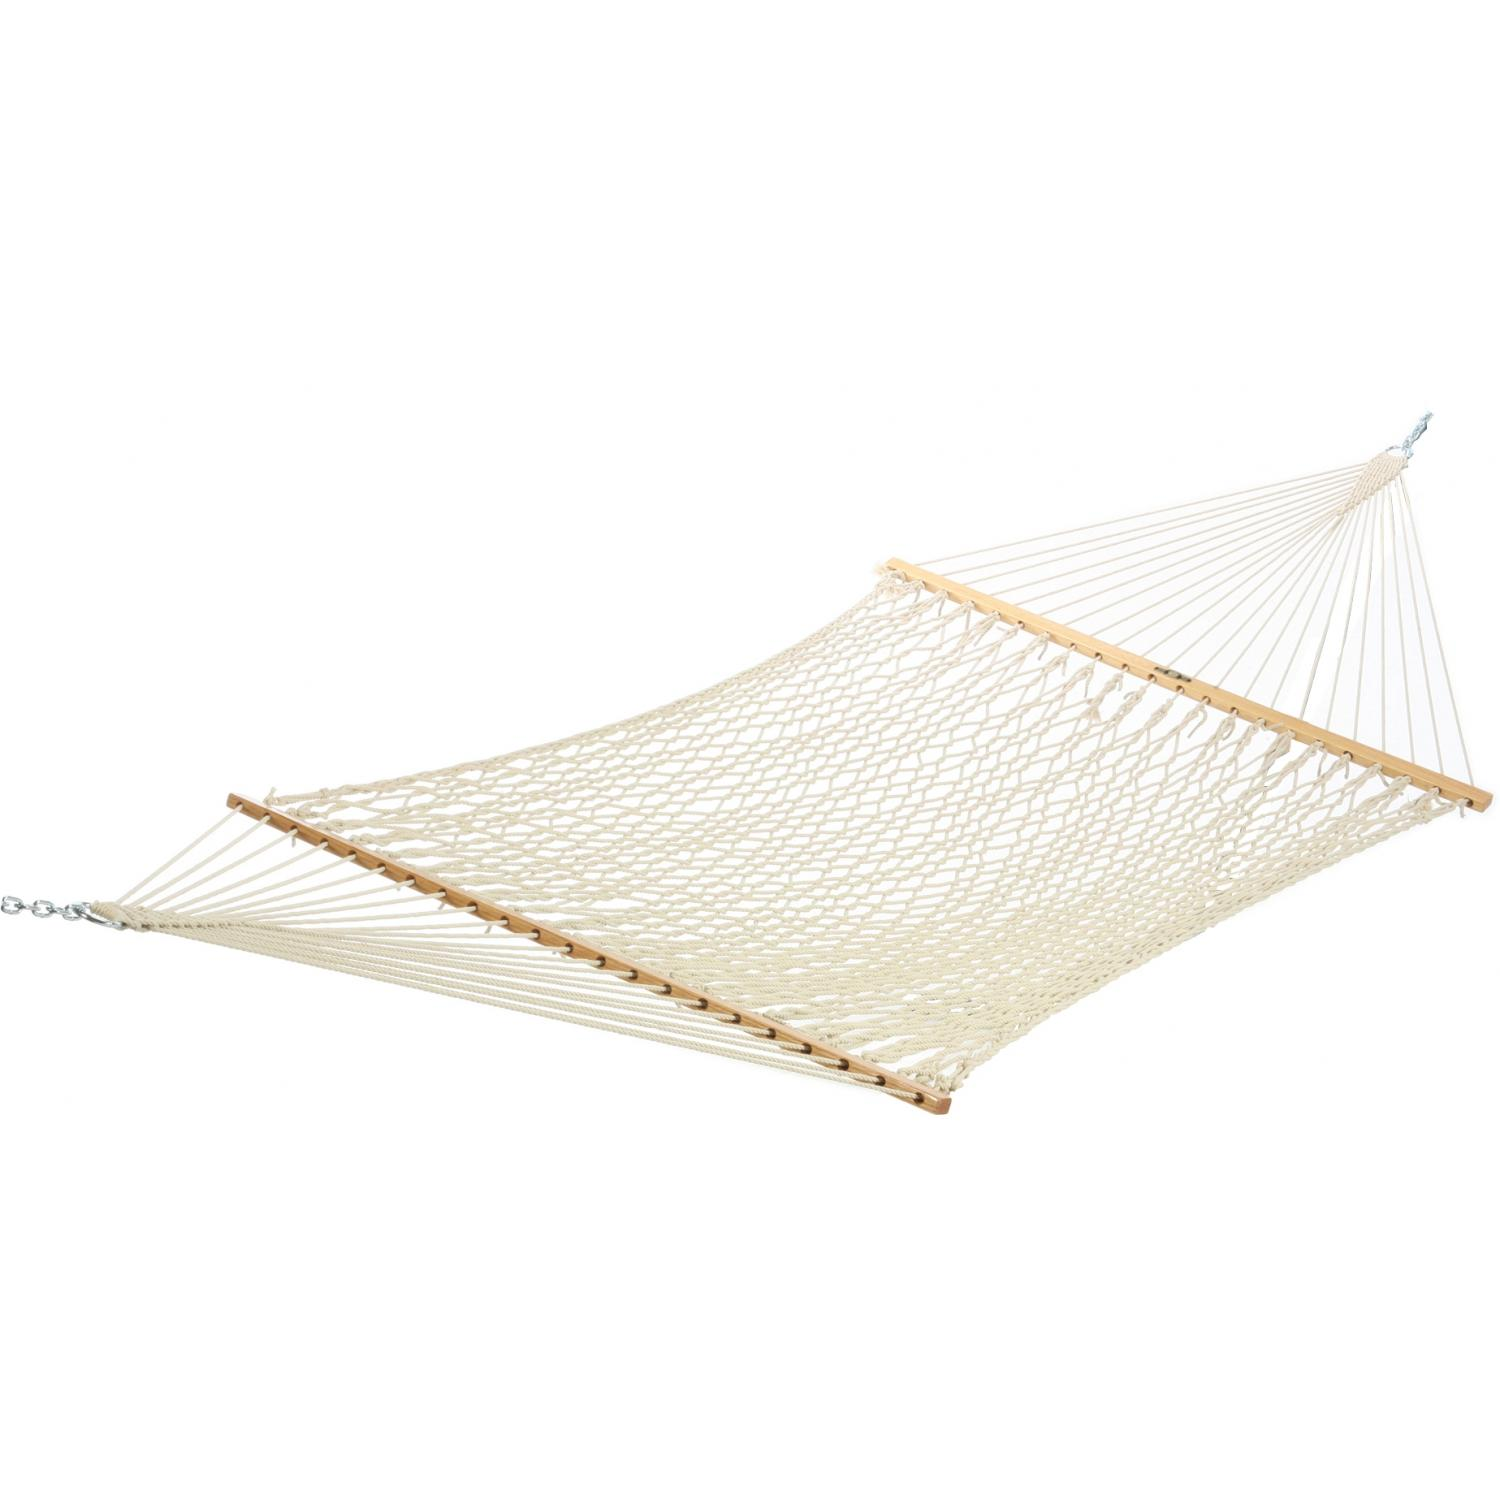 Pawleys Island 14OC Deluxe Original Cotton Rope Hammock - White